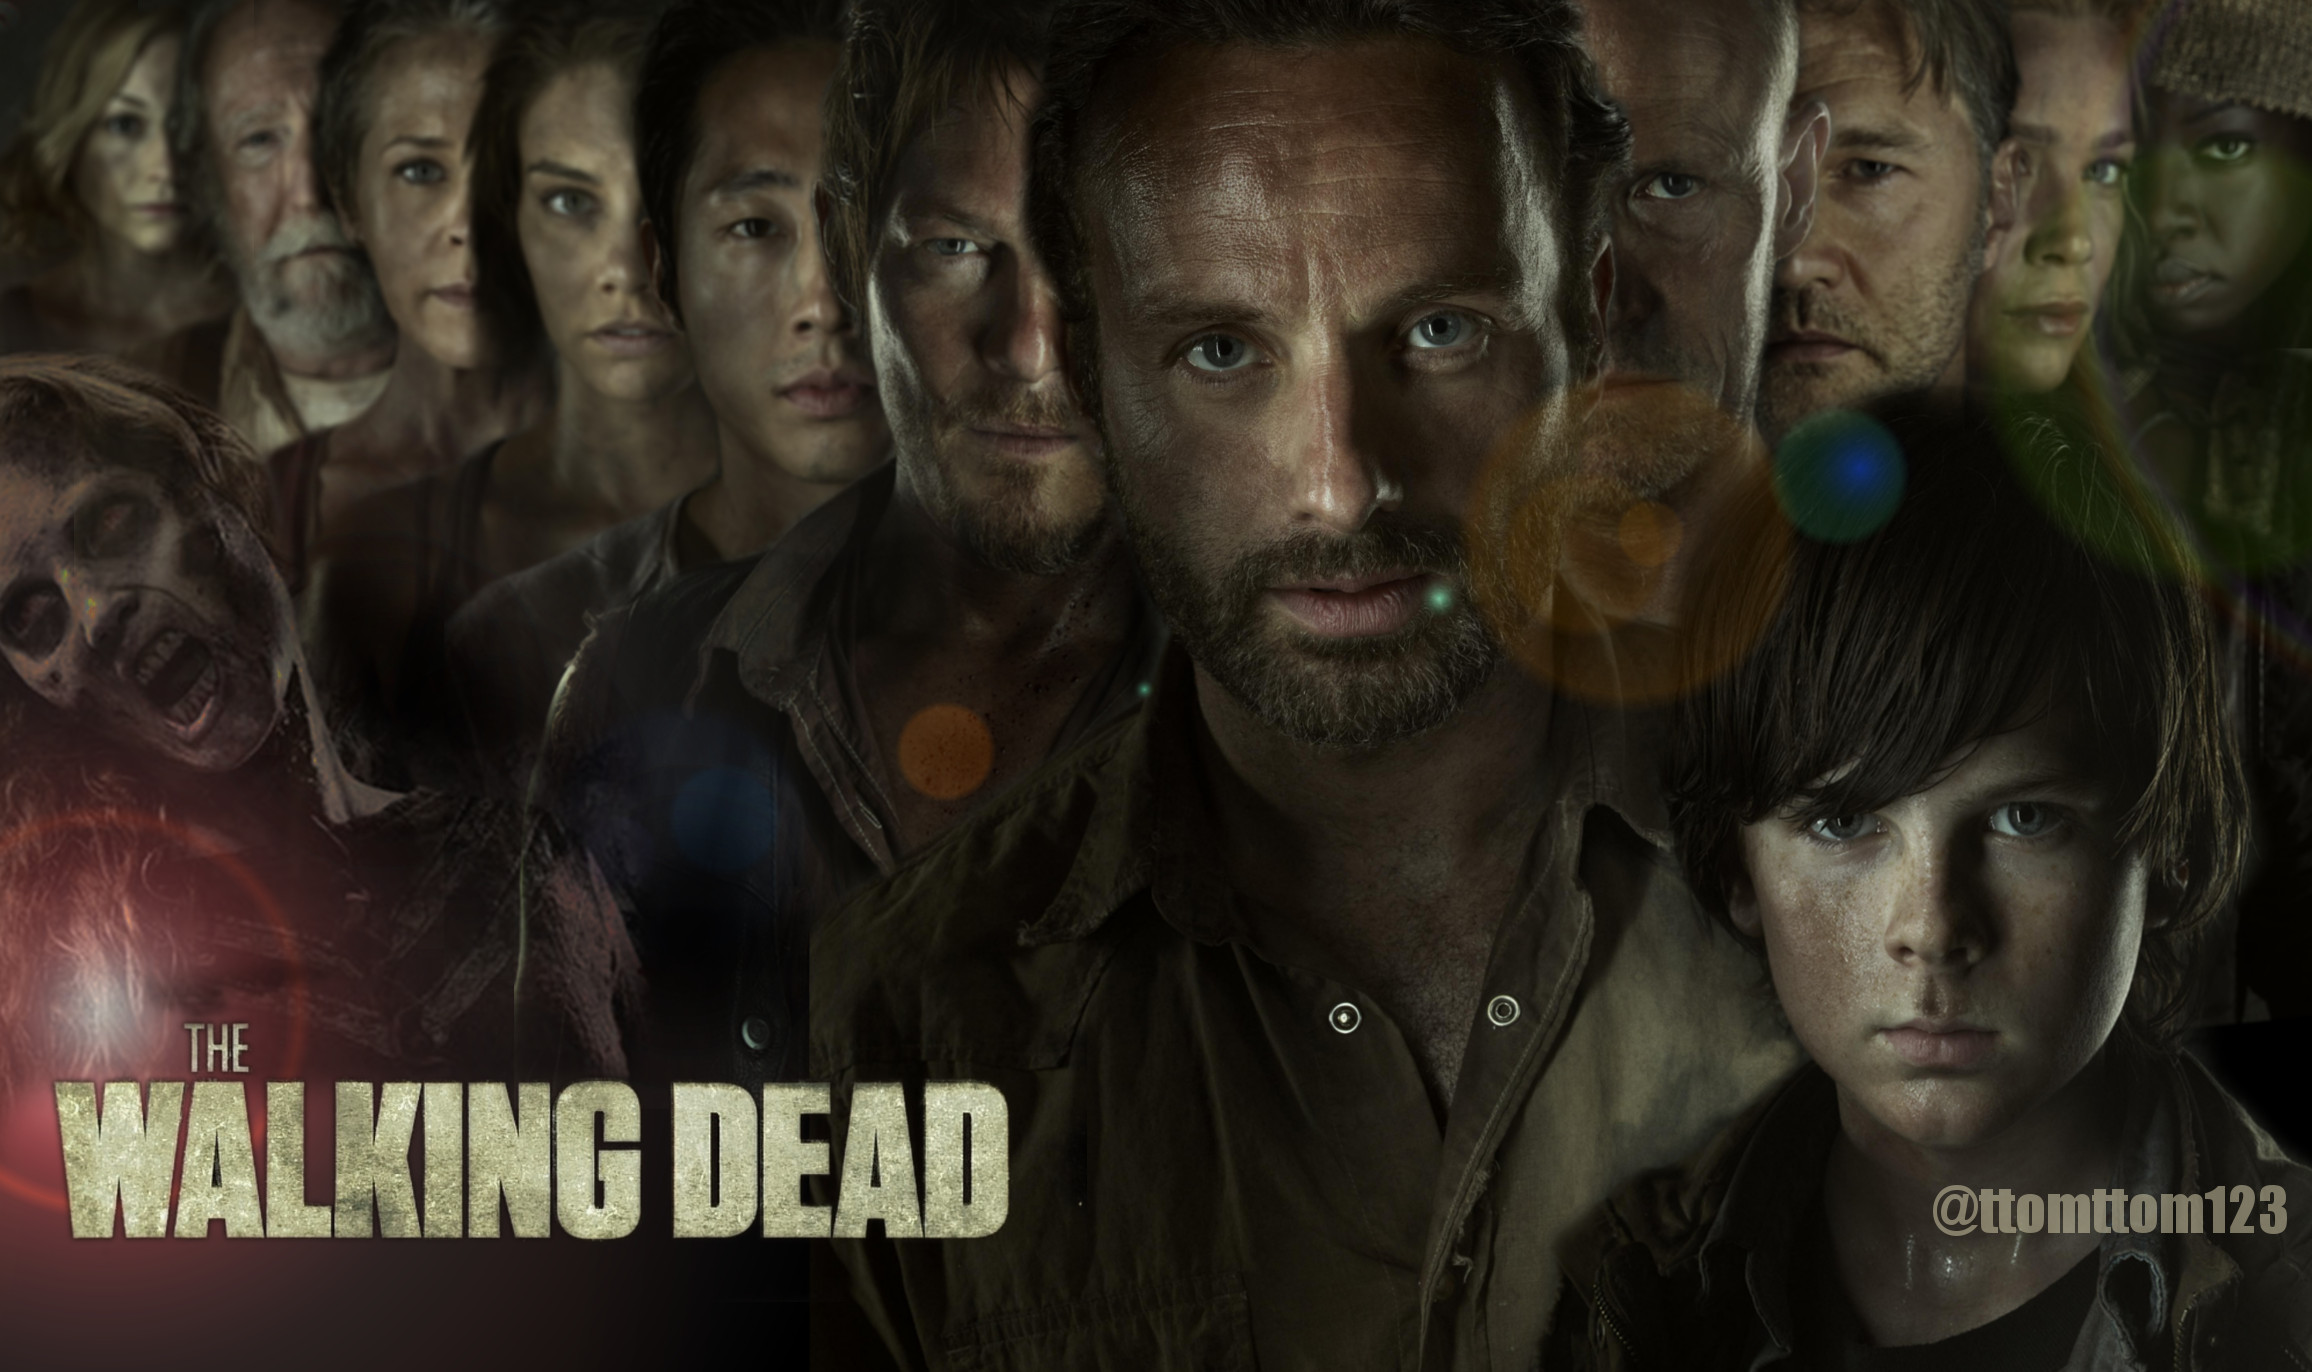 The Walking Dead Season 3 Returns 02/13